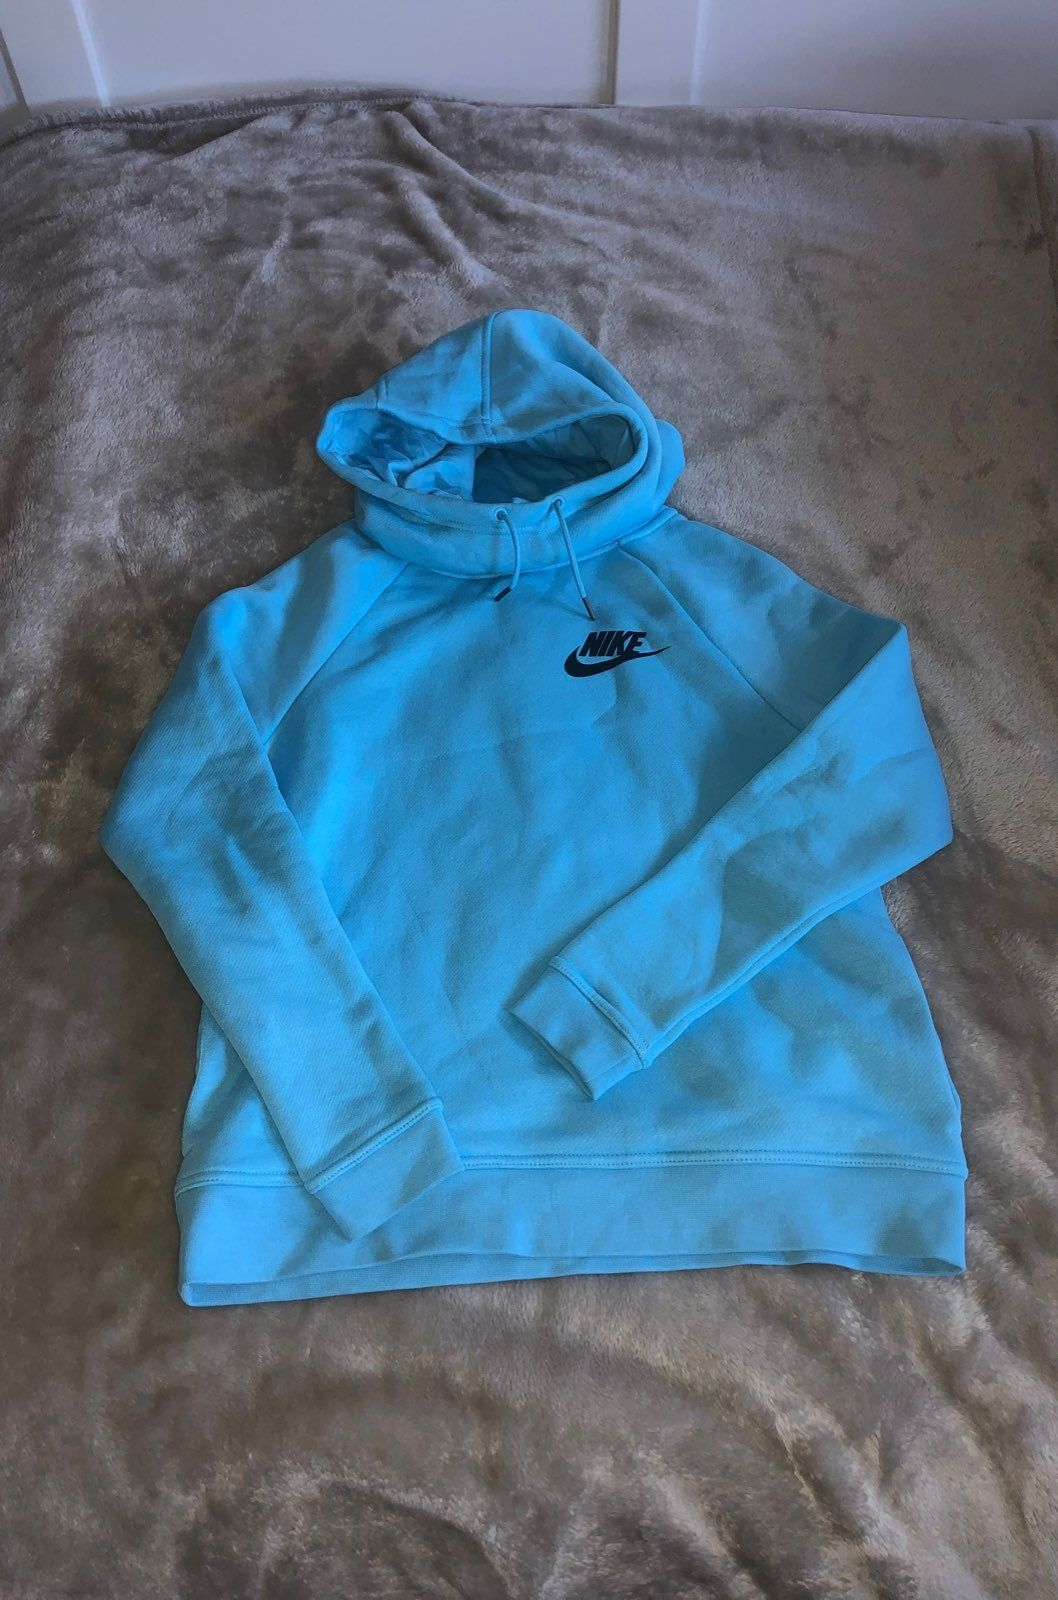 Aqua Blue Nike Cowl Neck Sweatshirt Barely Worn Size S Woman S There Are Unnoticeable Pockets On The Sides Super Cozy Sweatshirts Nike Sweatshirts Nike [ 1600 x 1058 Pixel ]